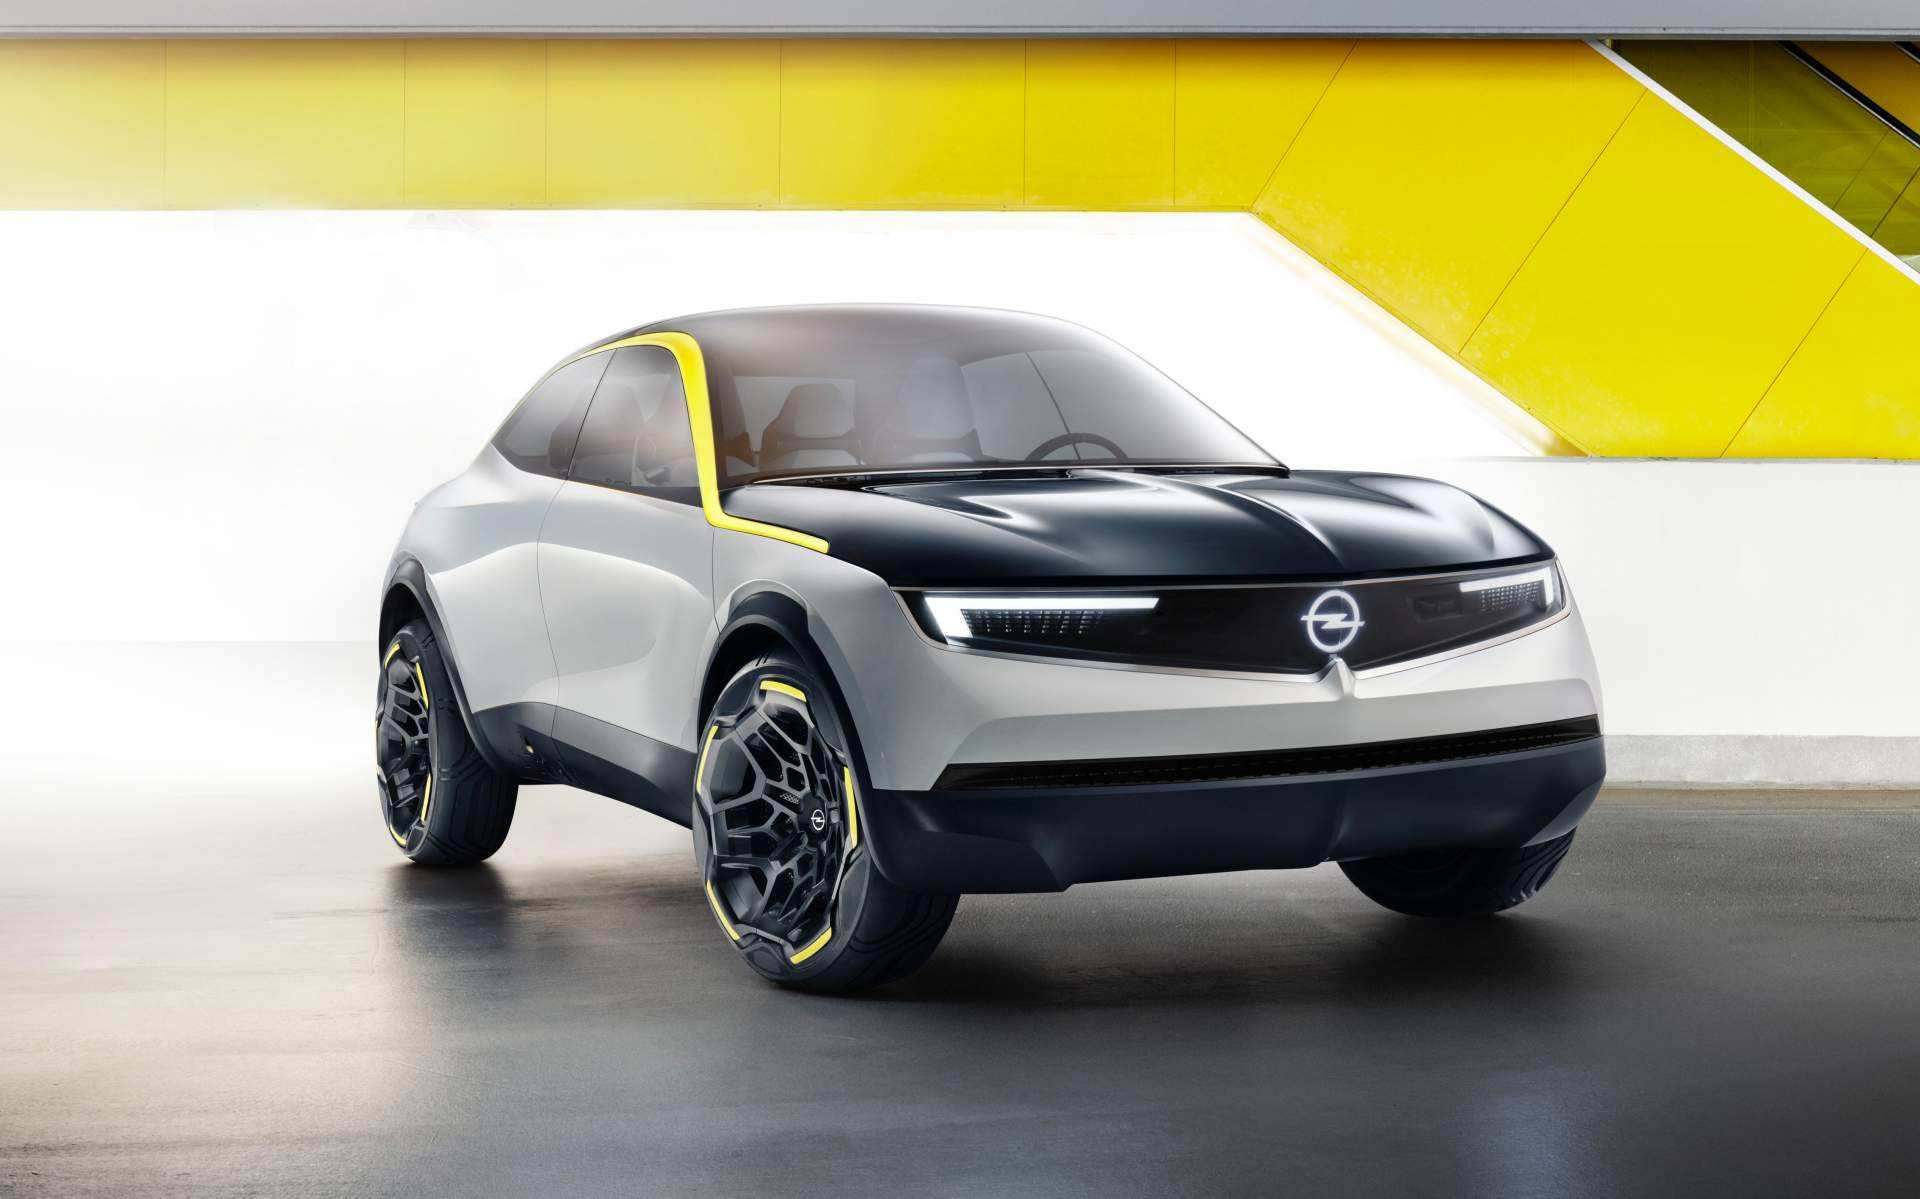 95 Concept of Opel Adam 2020 New Review by Opel Adam 2020